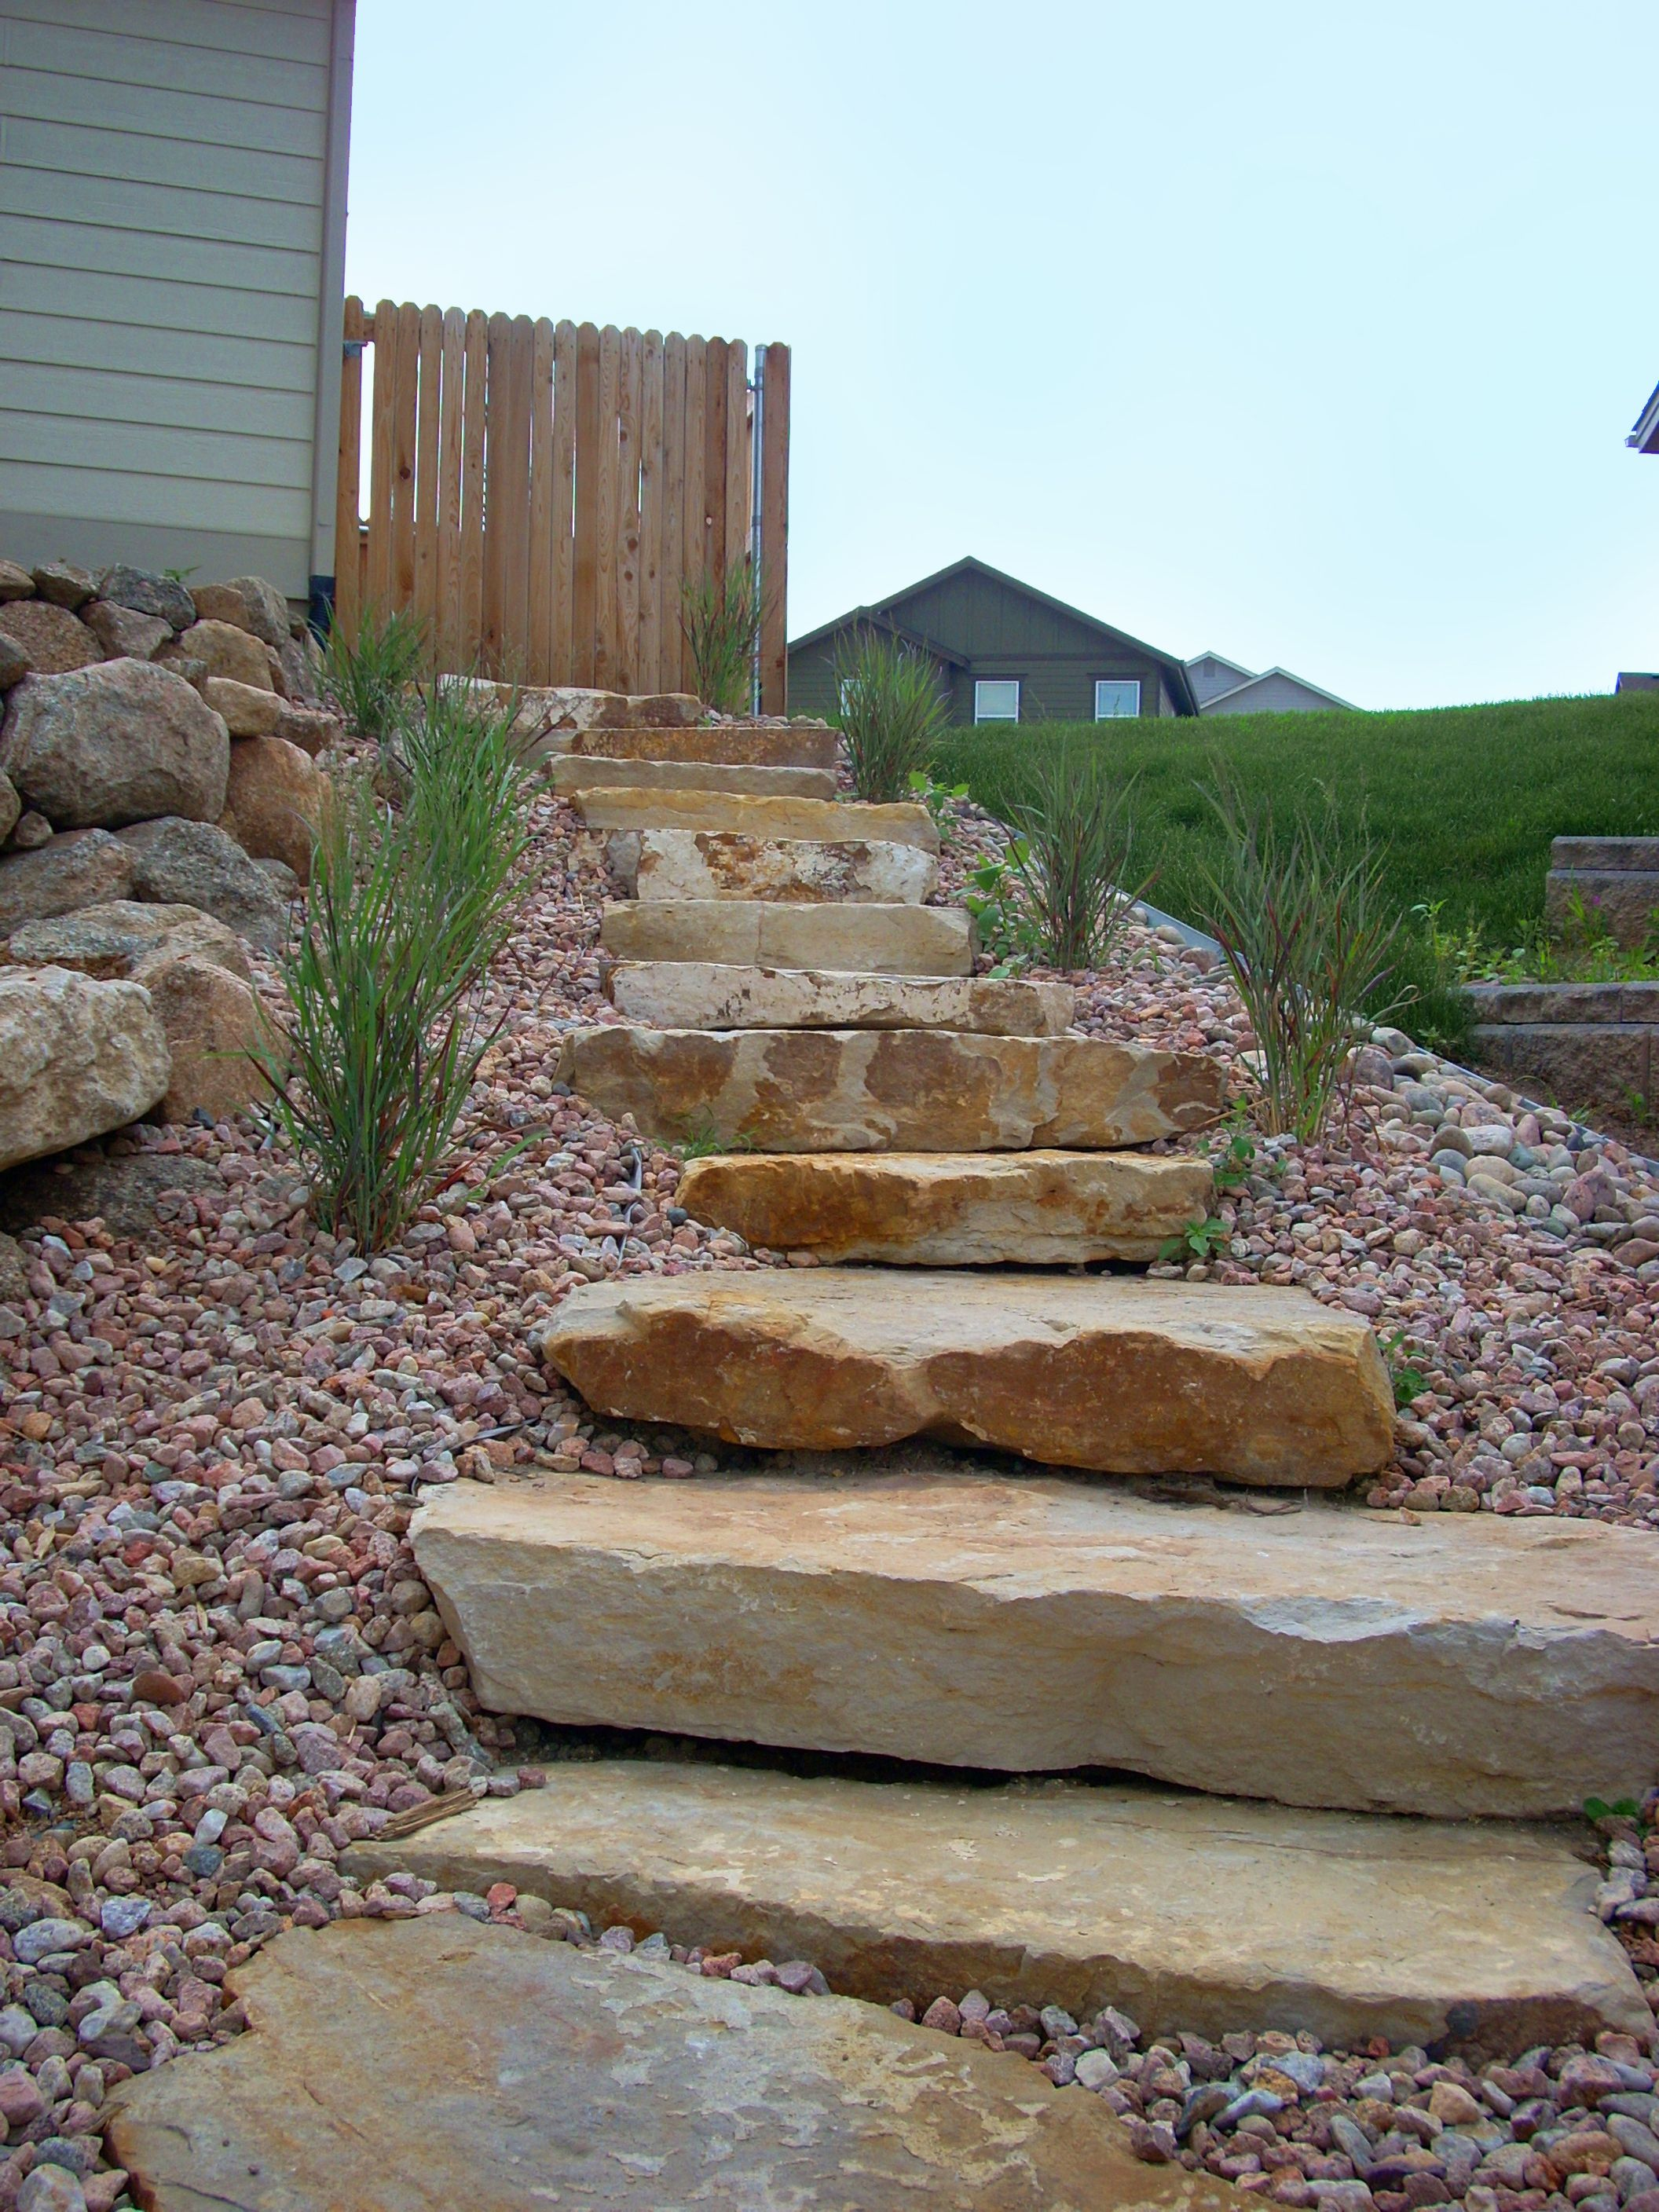 Siloam Stone Stairs Landscape Features Stone Stairs